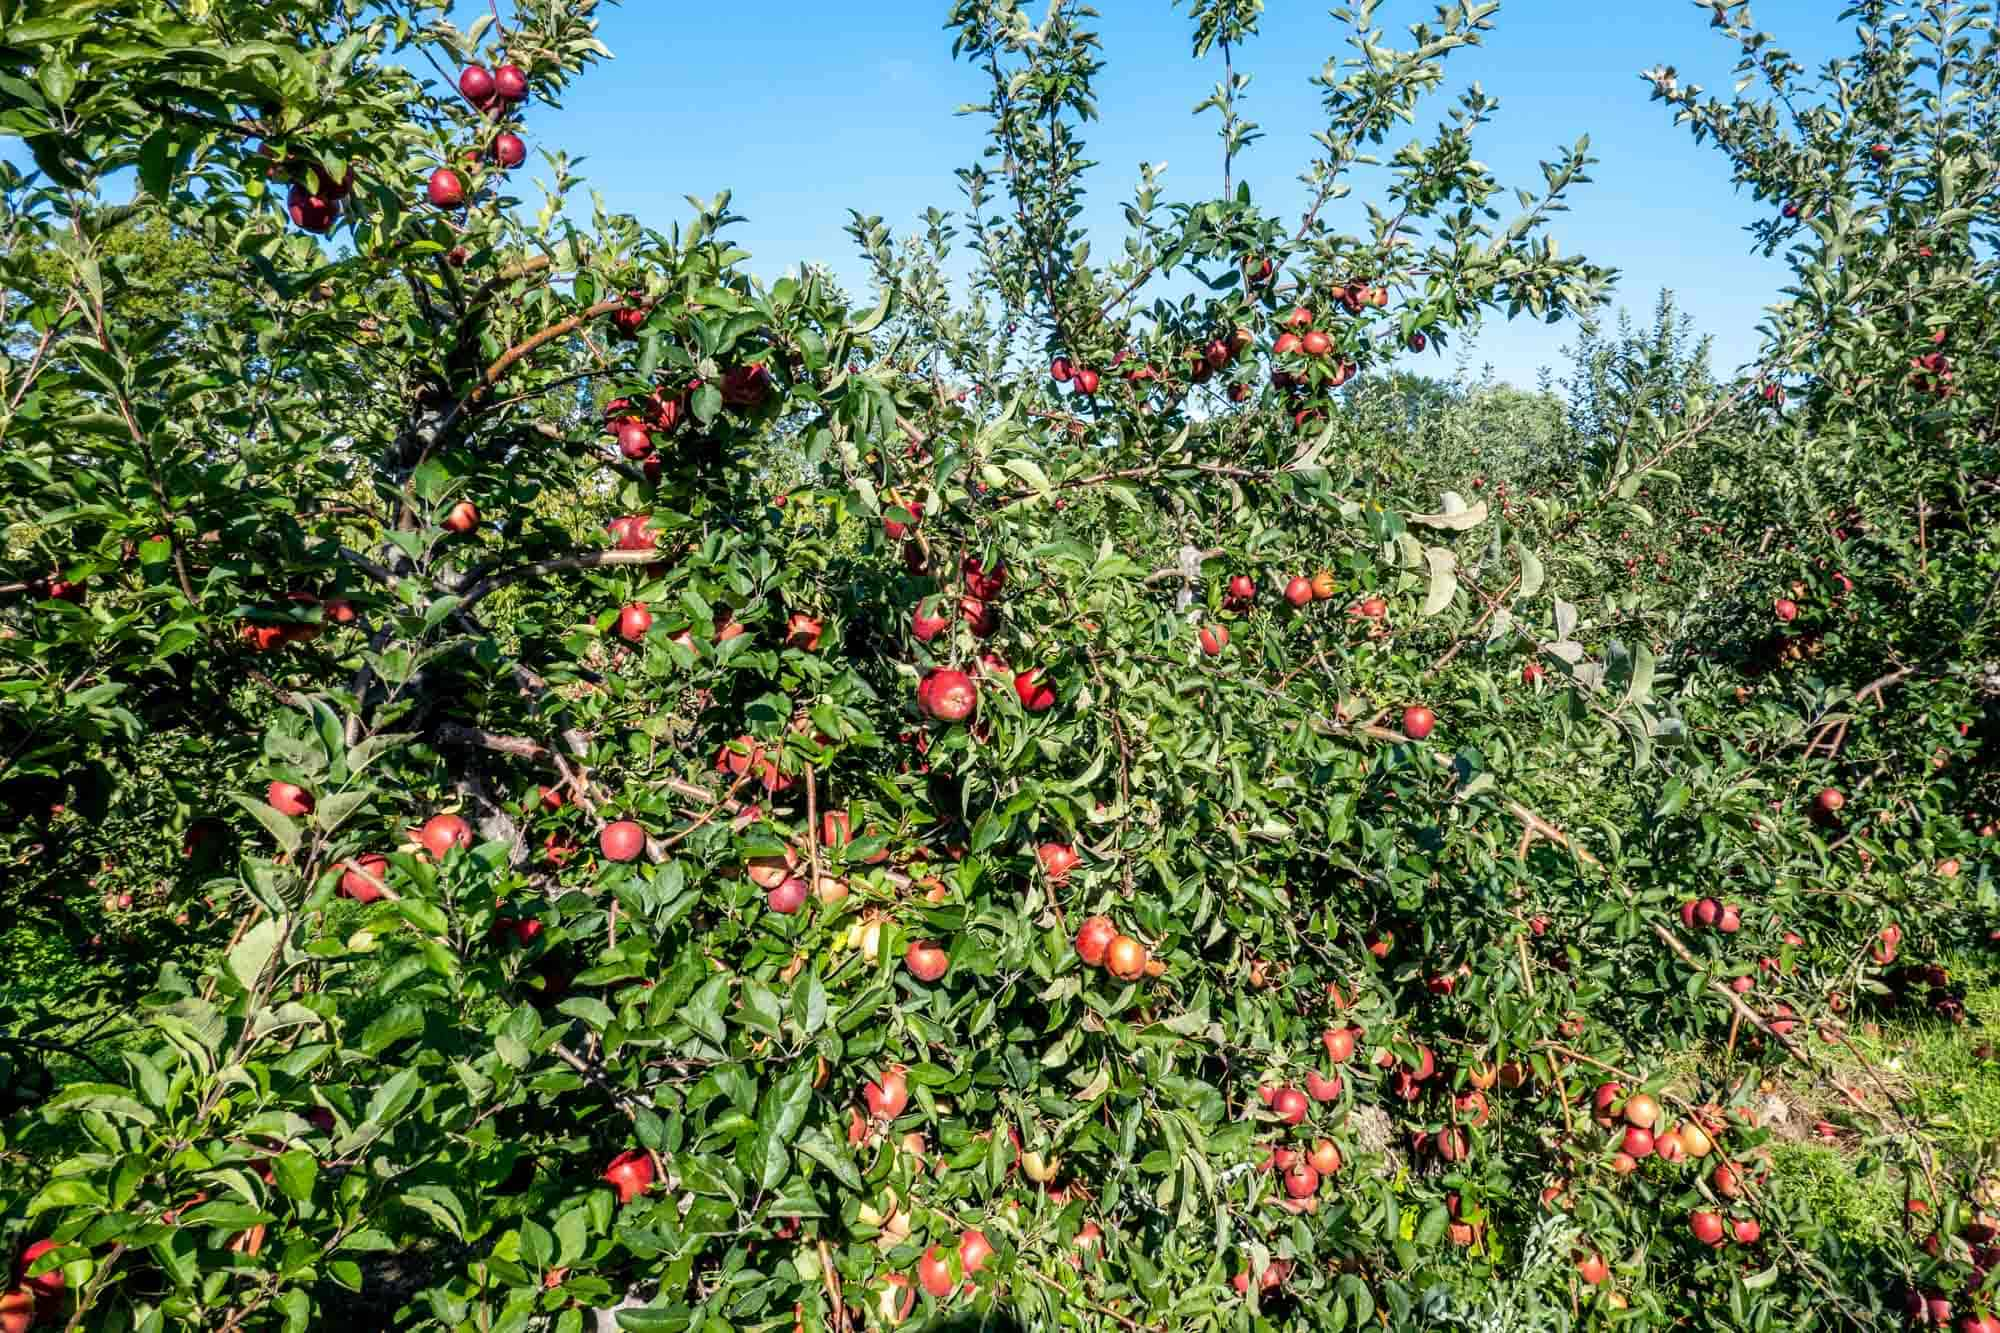 Lots of red apples on trees in an orchard